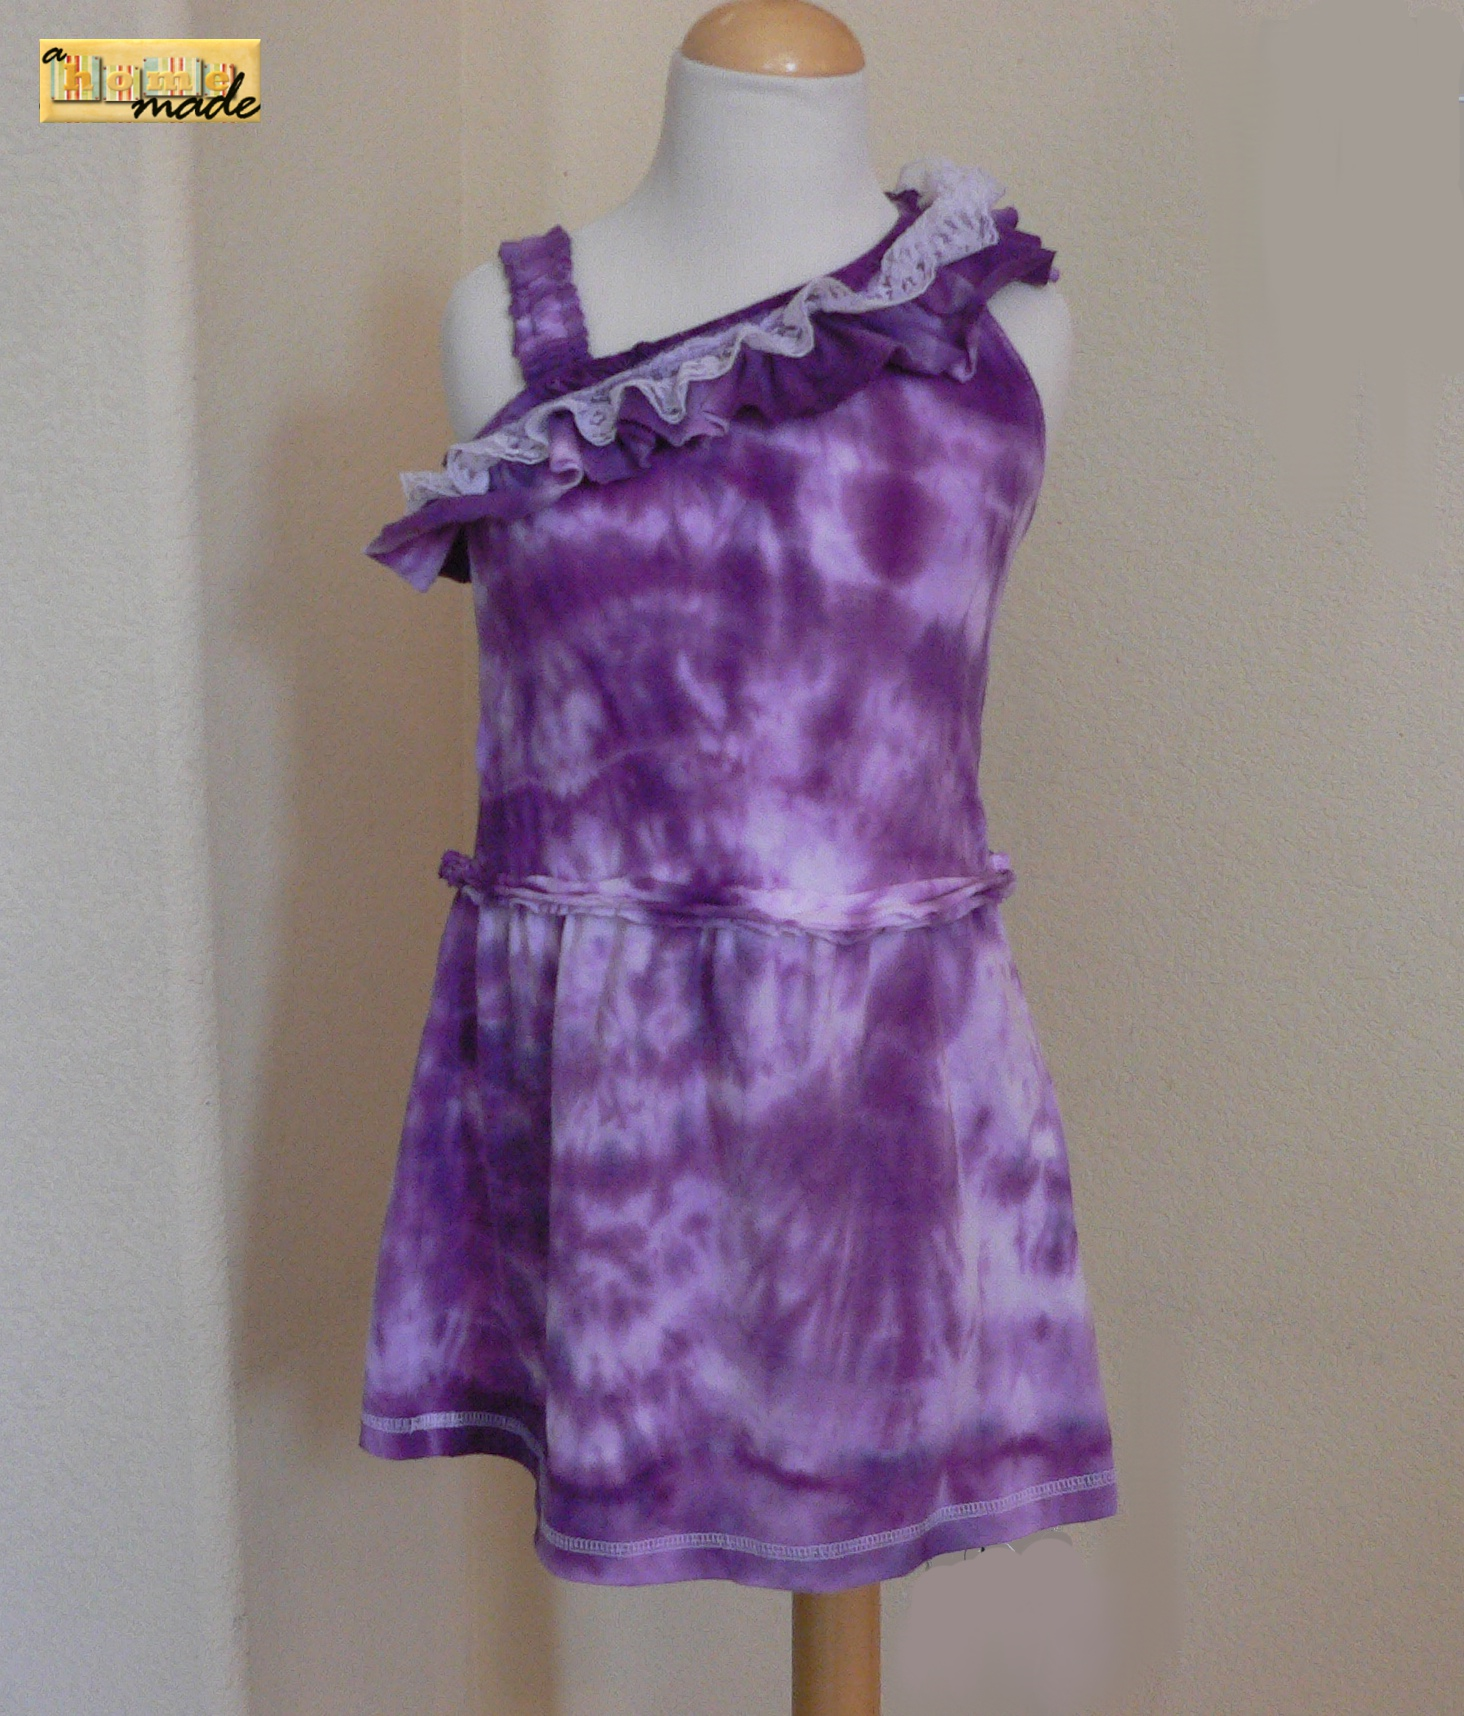 Asymmetrical Dress from Upcycled Tees